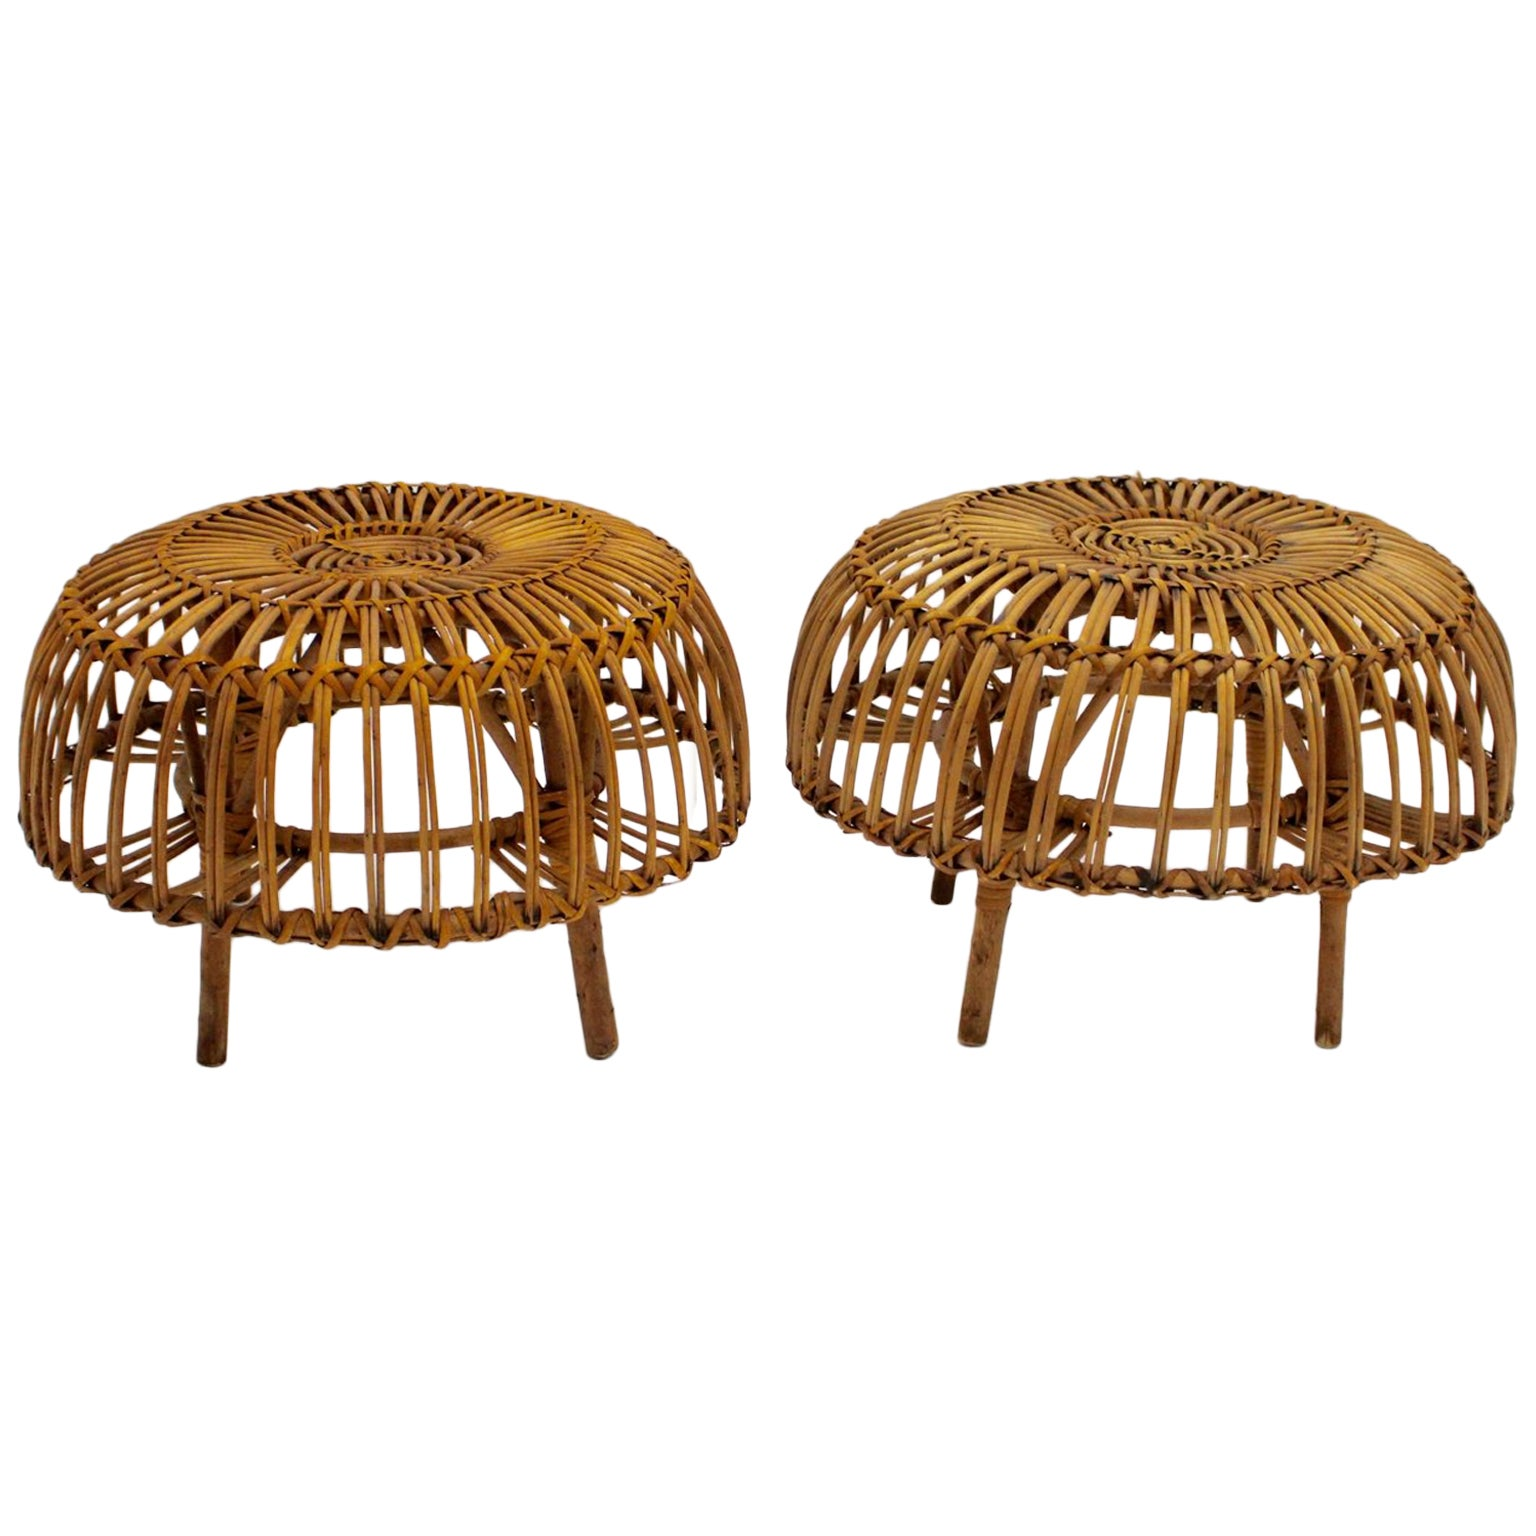 Mid Century Modern Rattan Poufs Franco Albini Style Italy 1950s Set of Two